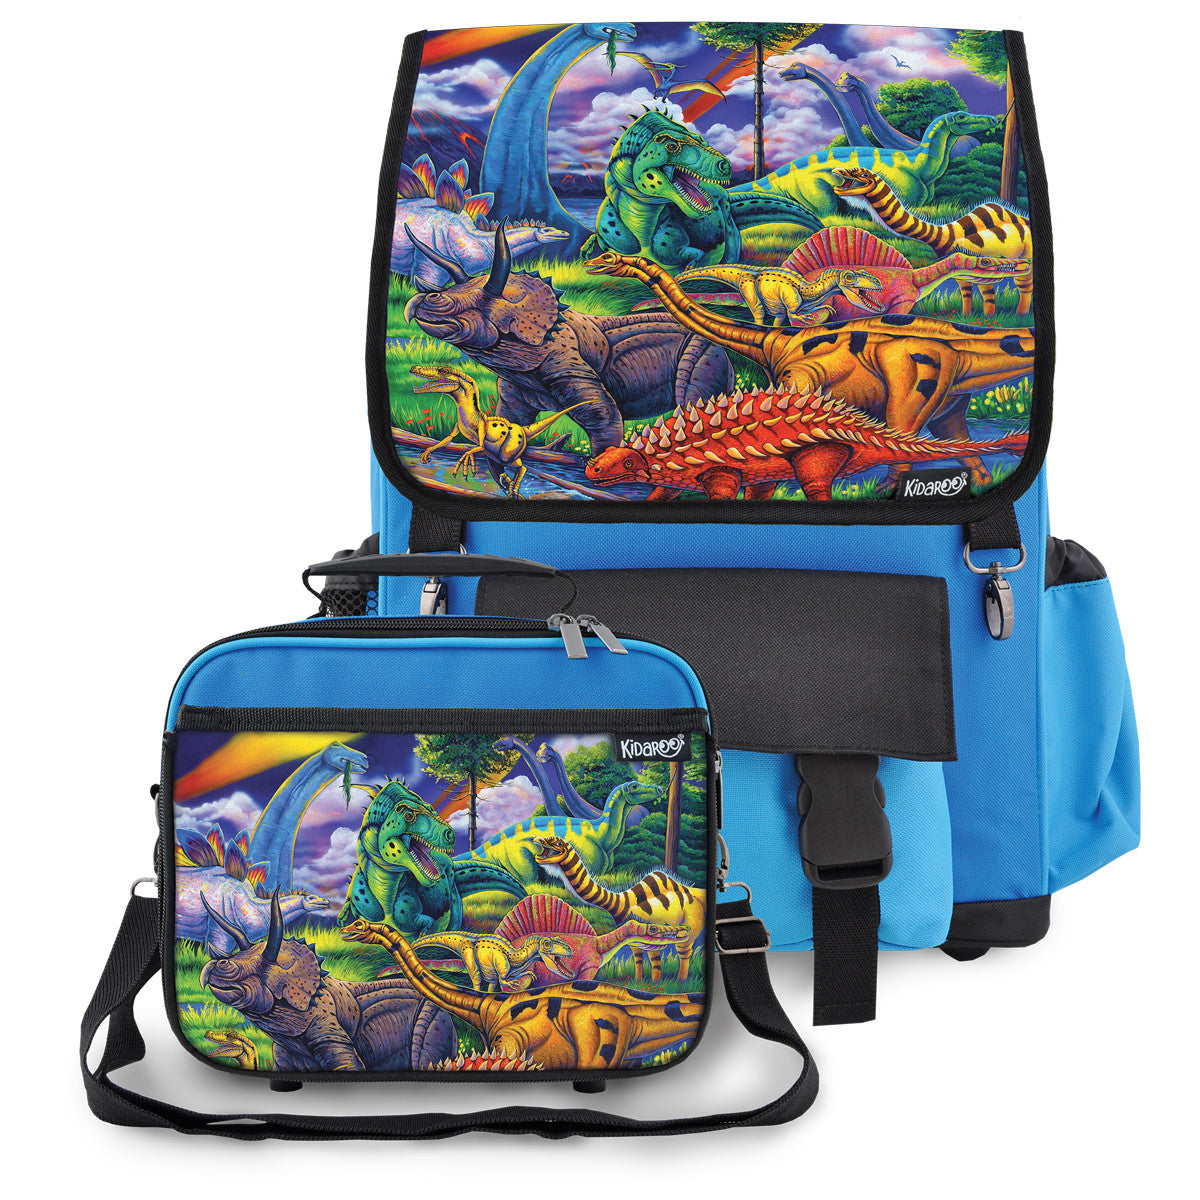 Kidaroo Blue Dinosaur Jungle School Backpack & Lunchbox Set for Boys, Girls, Kids